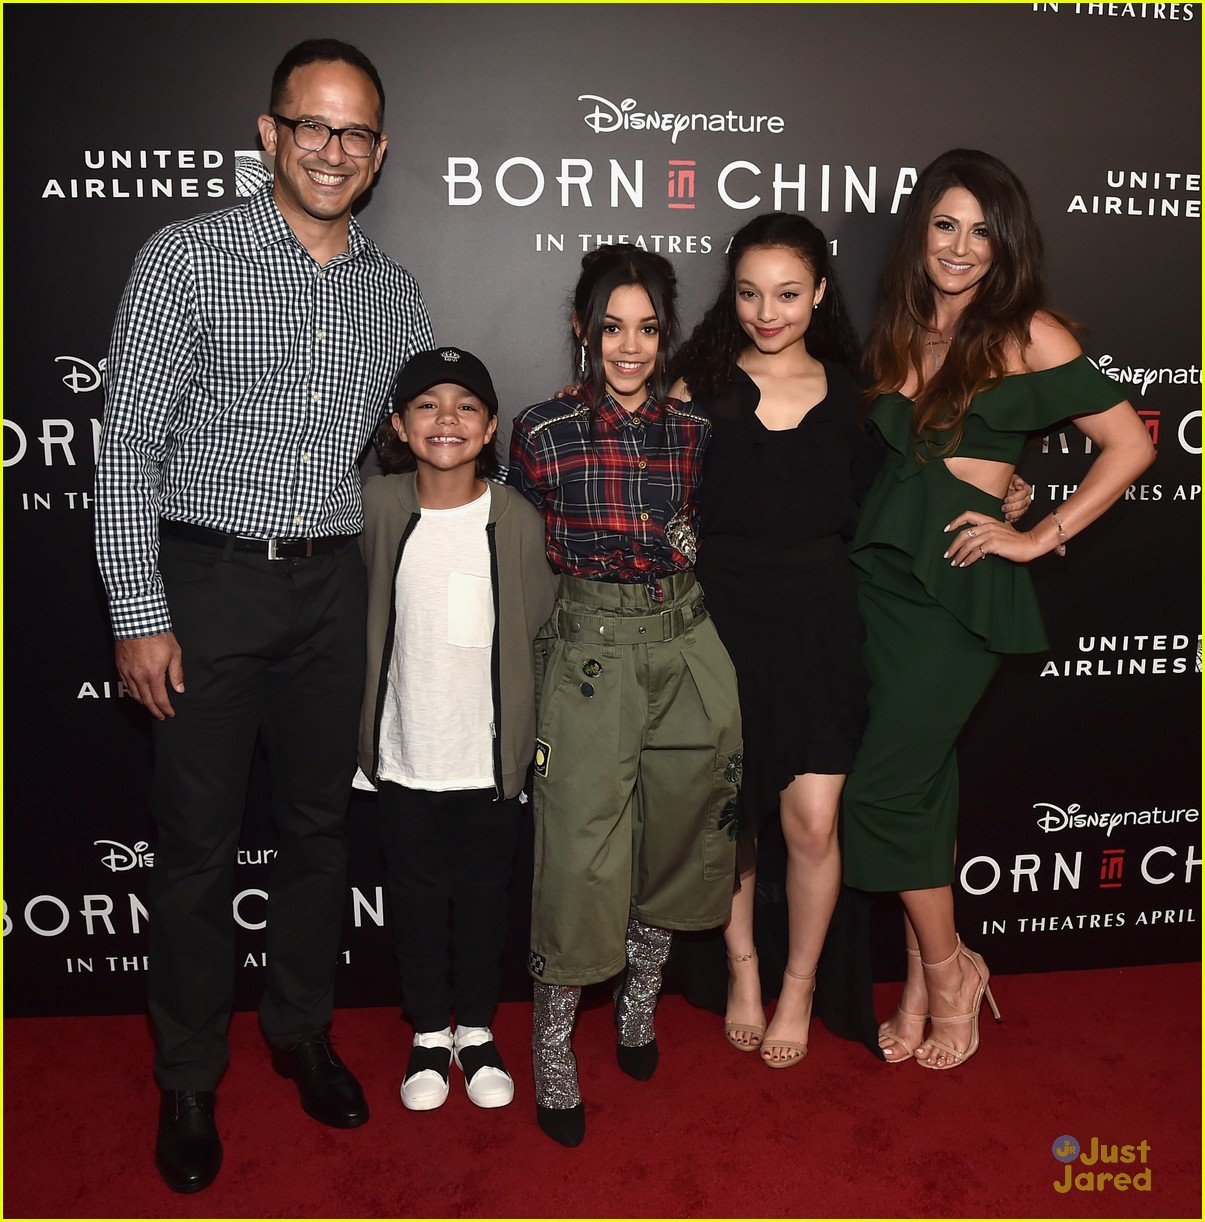 born in china premiere andi mack sitm mech casts attend 04